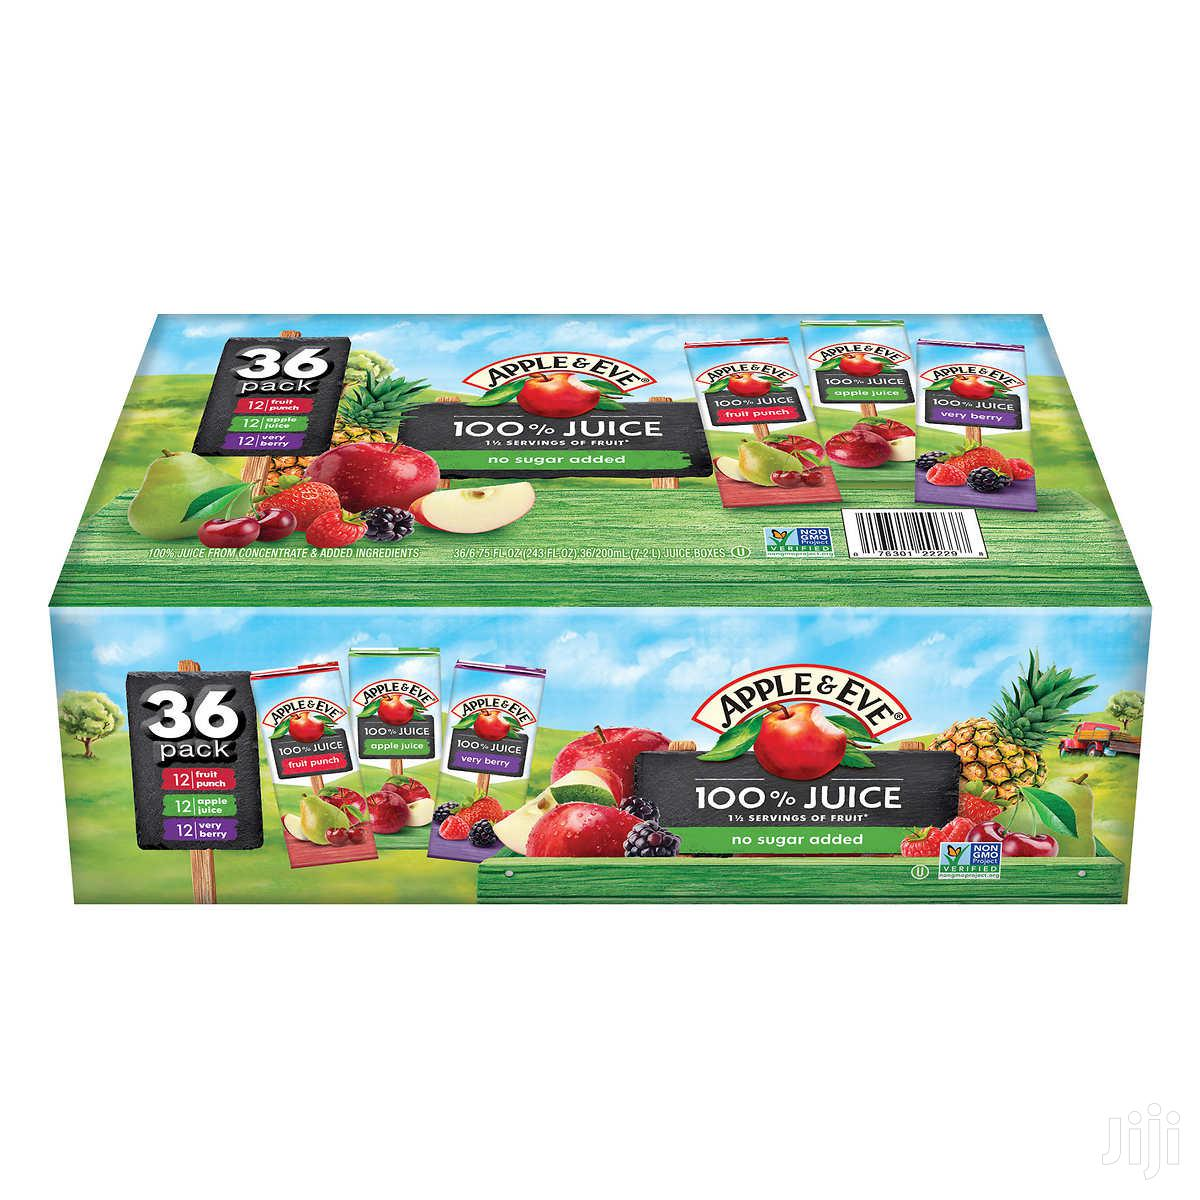 Archive: Apple & Eve 100% Juice, Variety Pack, 200ml, 36-count